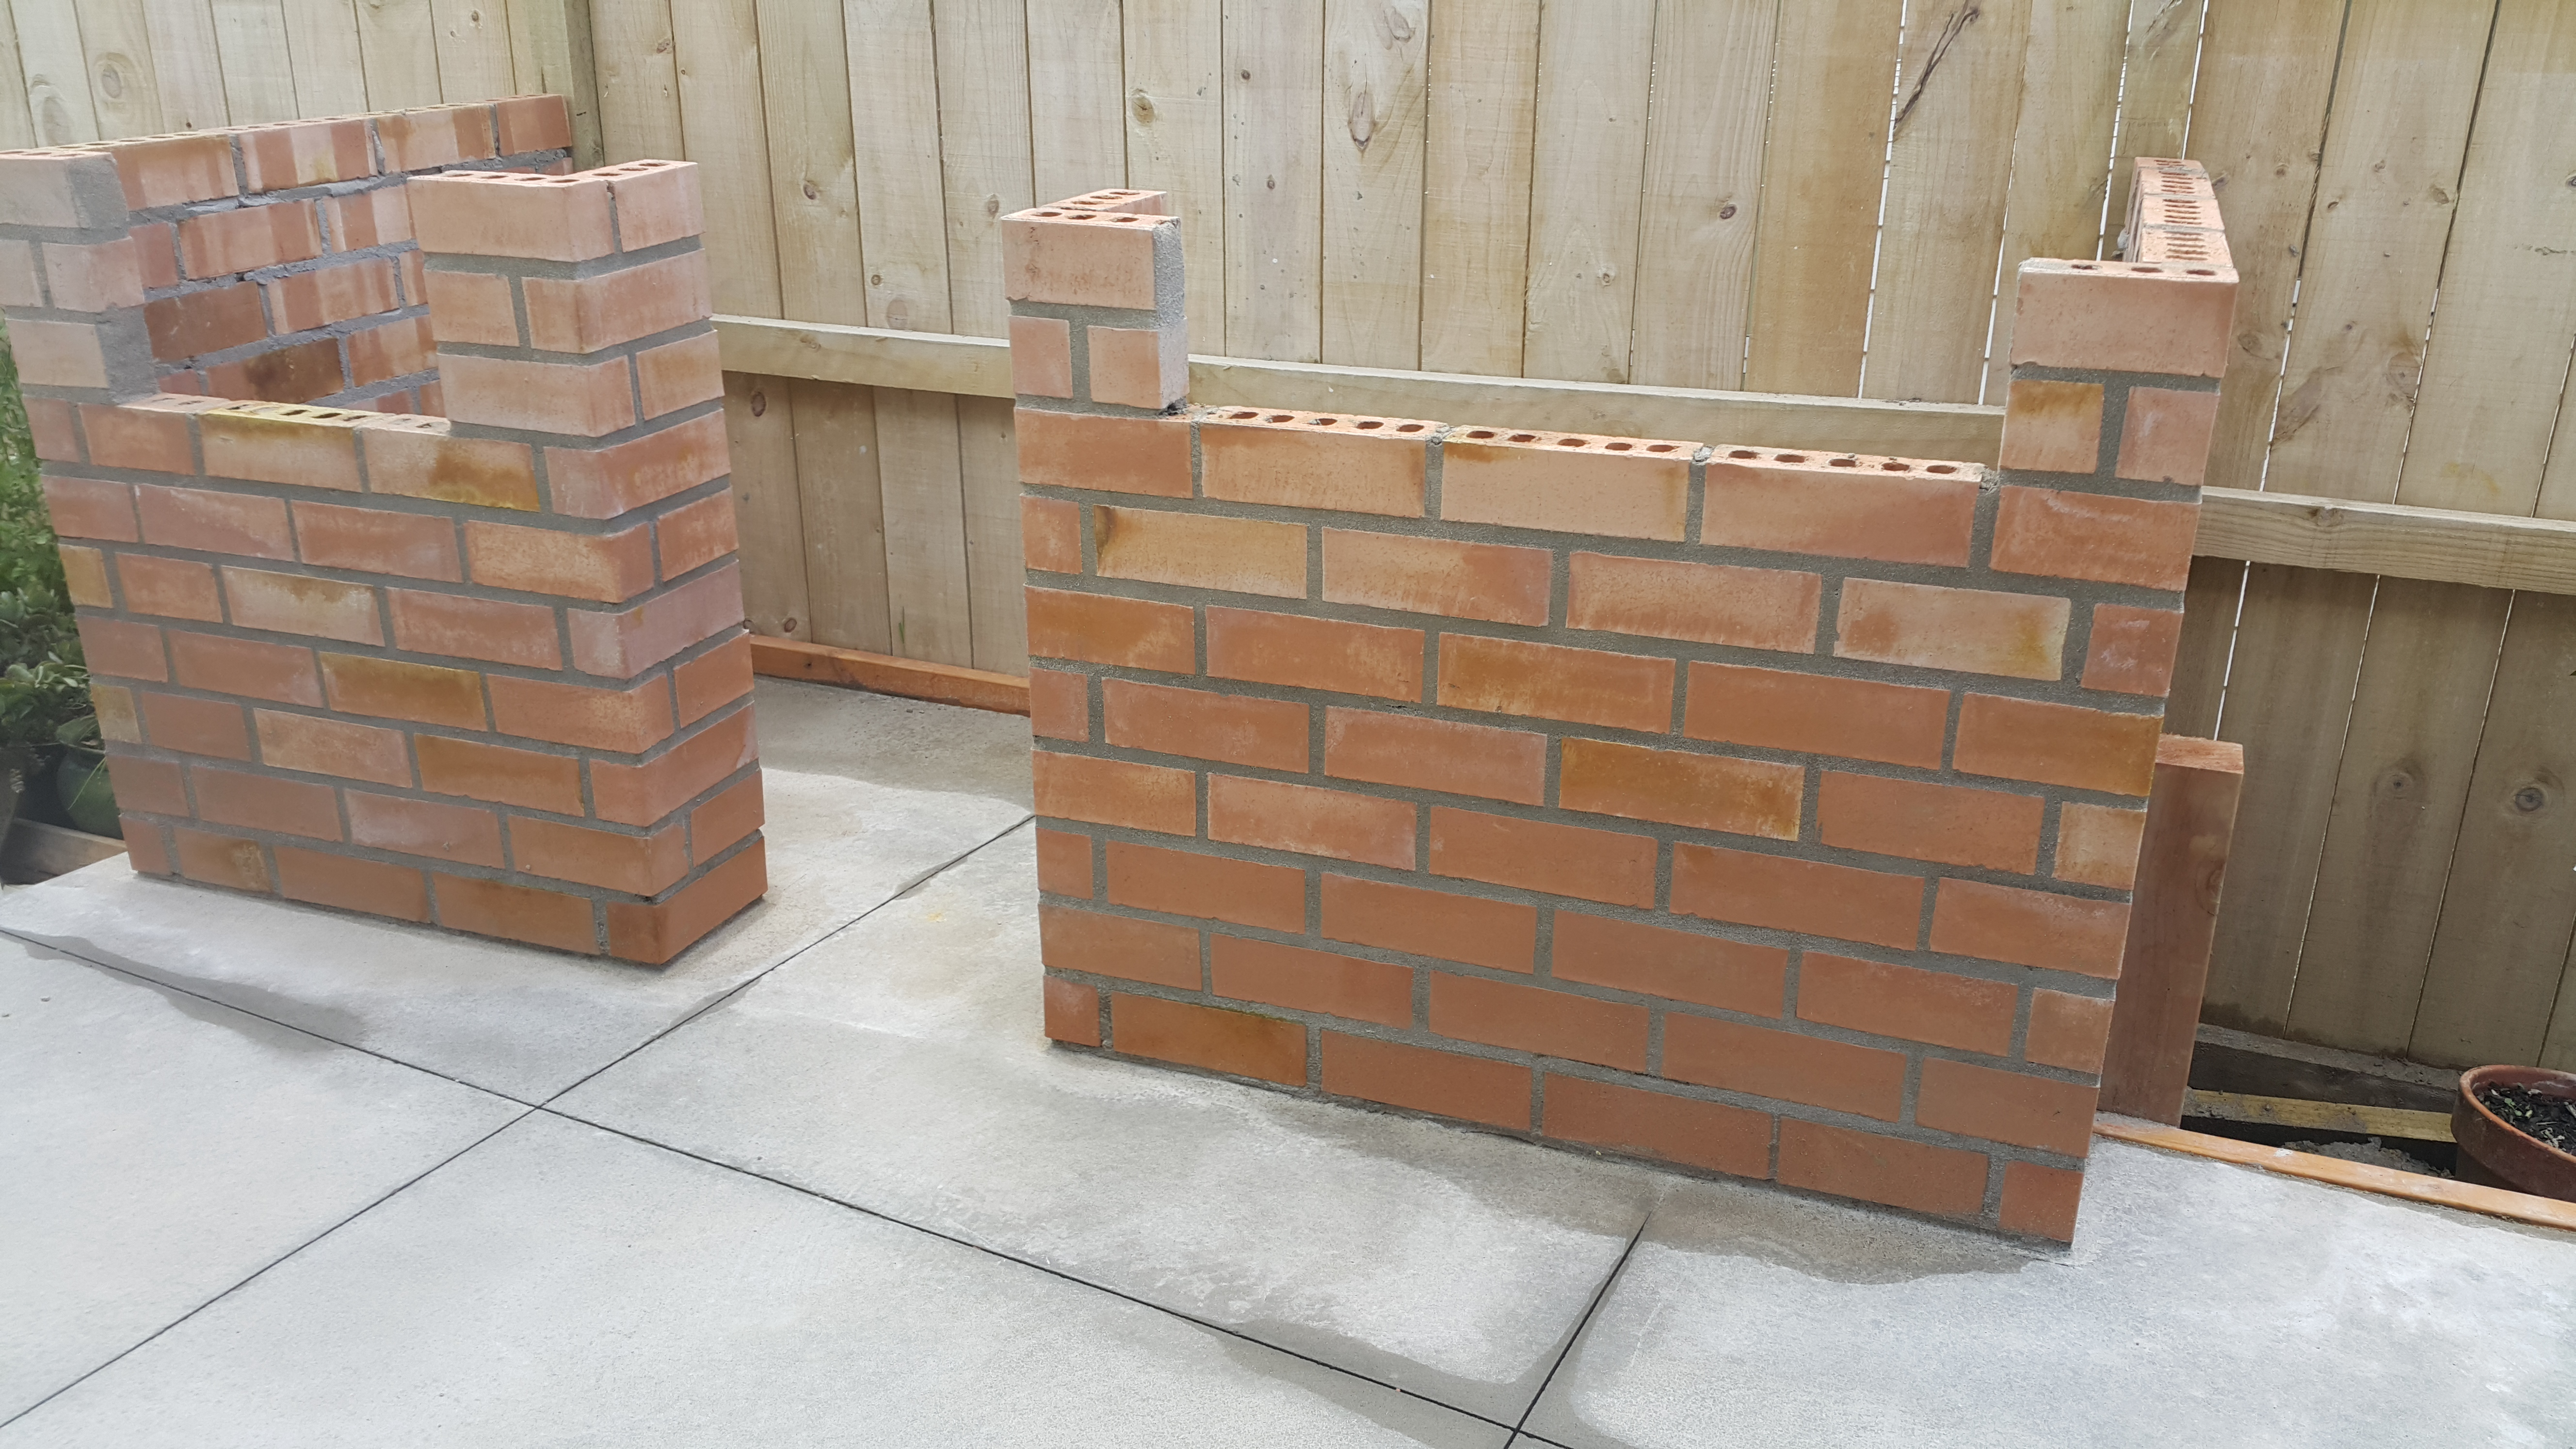 Picture of Lay the Bricks